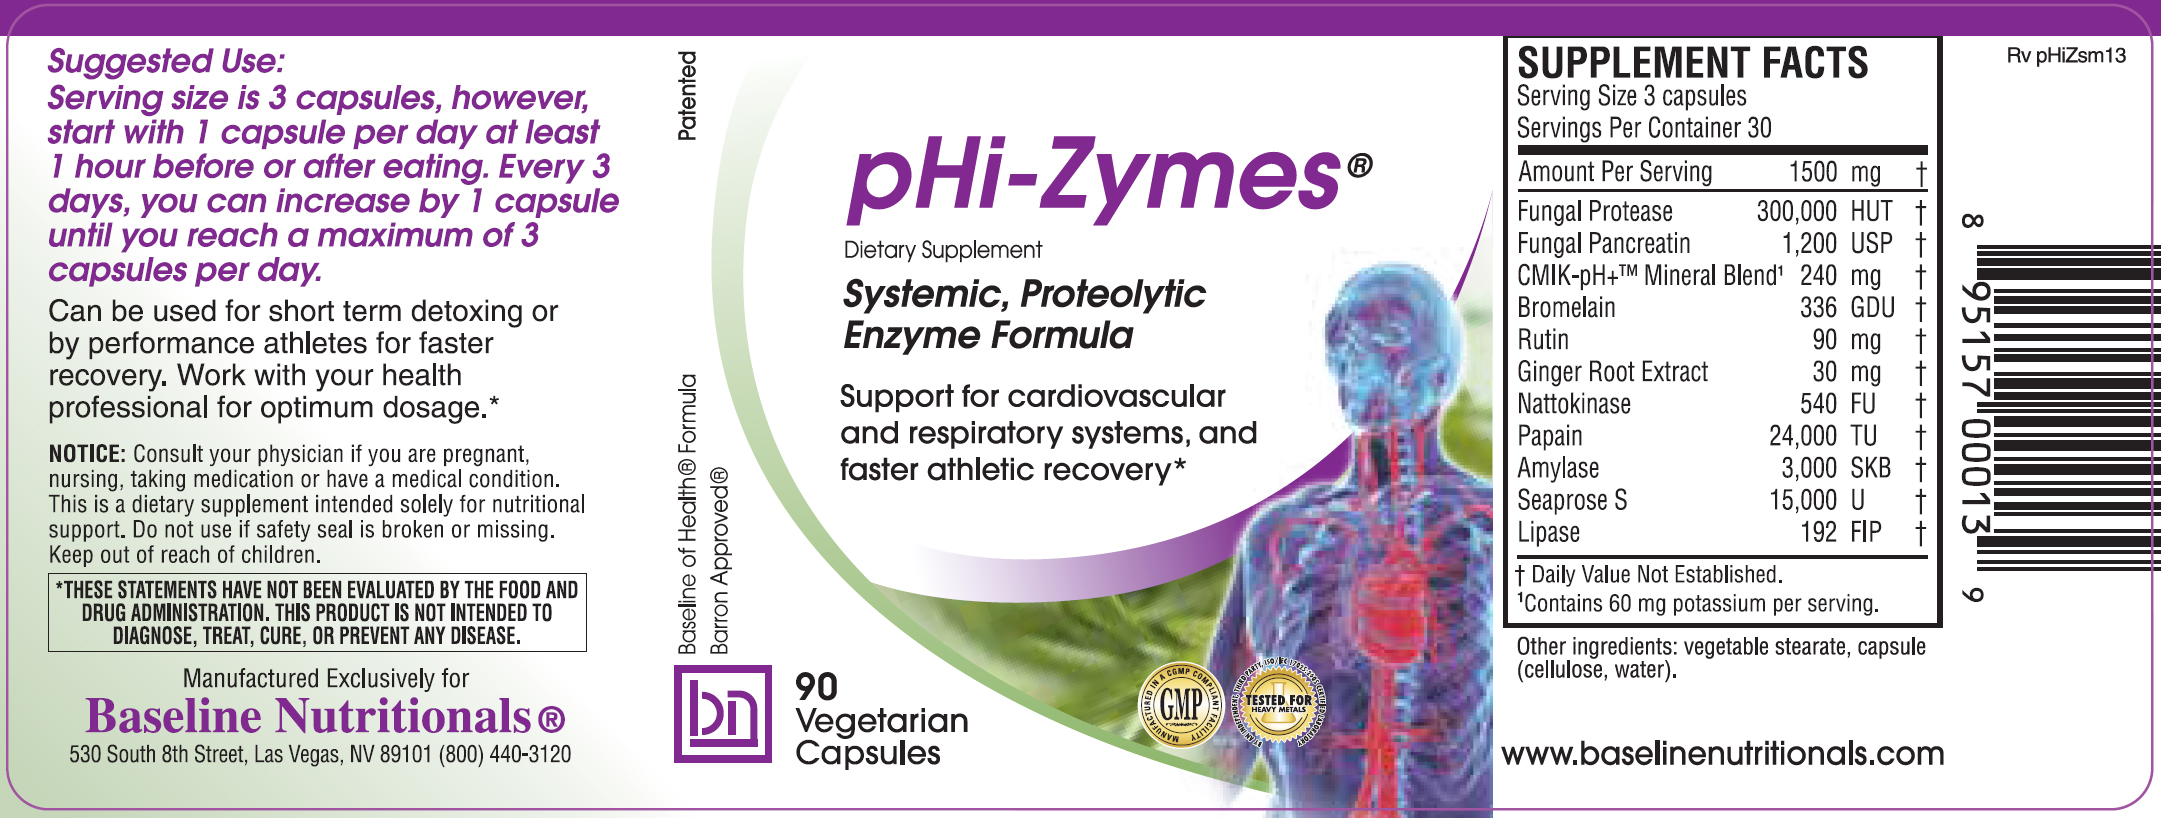 phi-zymes